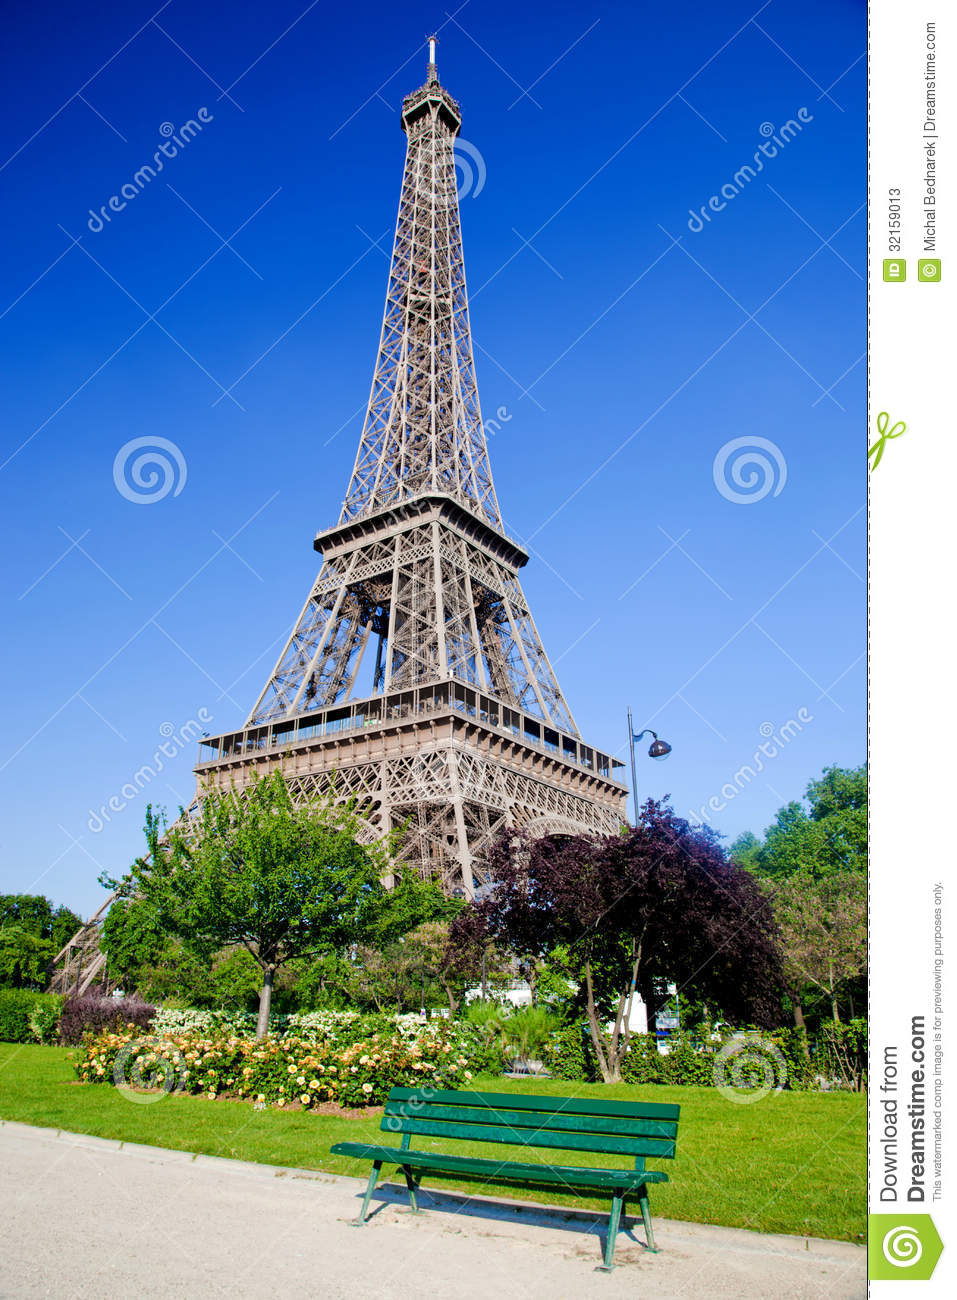 Eiffel Tower surrounded by the park with a bench, trees and flowers ...